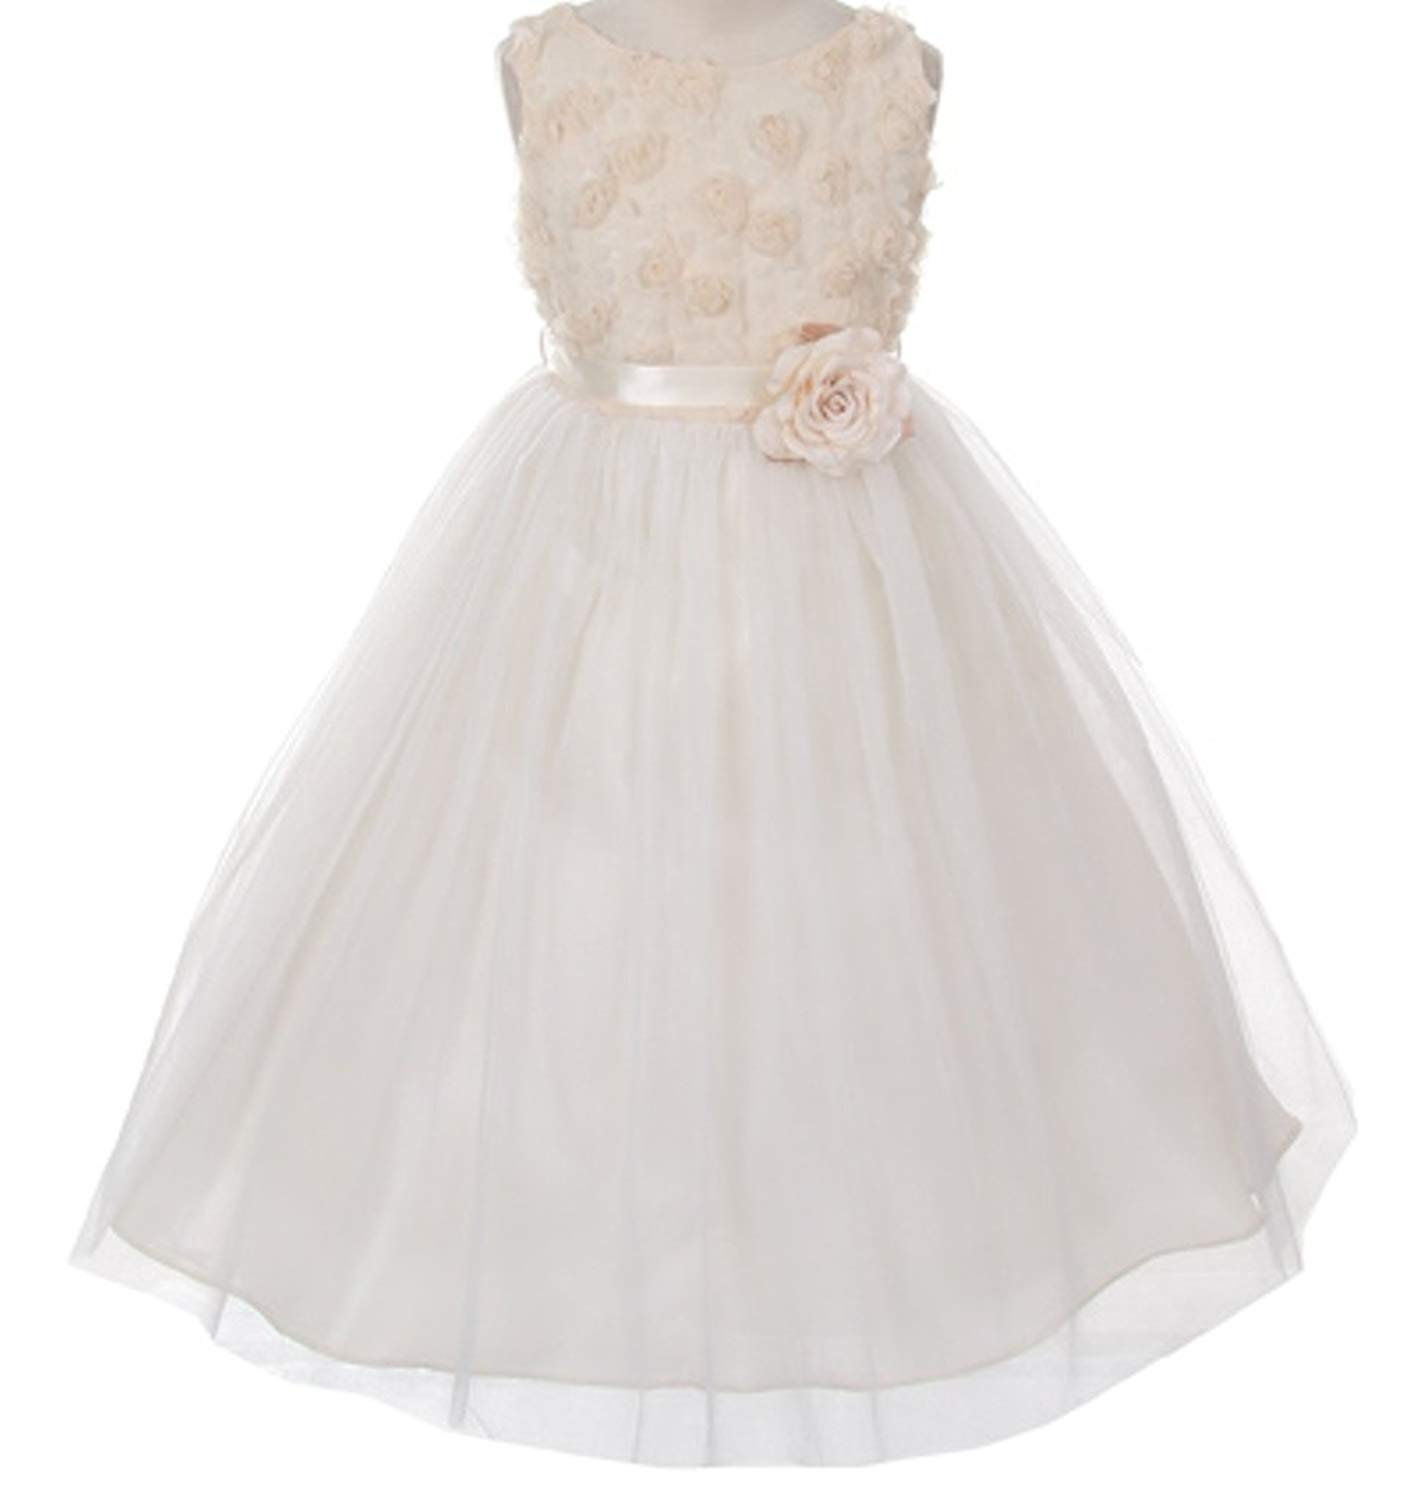 cbba1a3ce Get Quotations · AkiDress Tulle and Mesh Flower Bodice Flower Girl Dress  for Little Girl